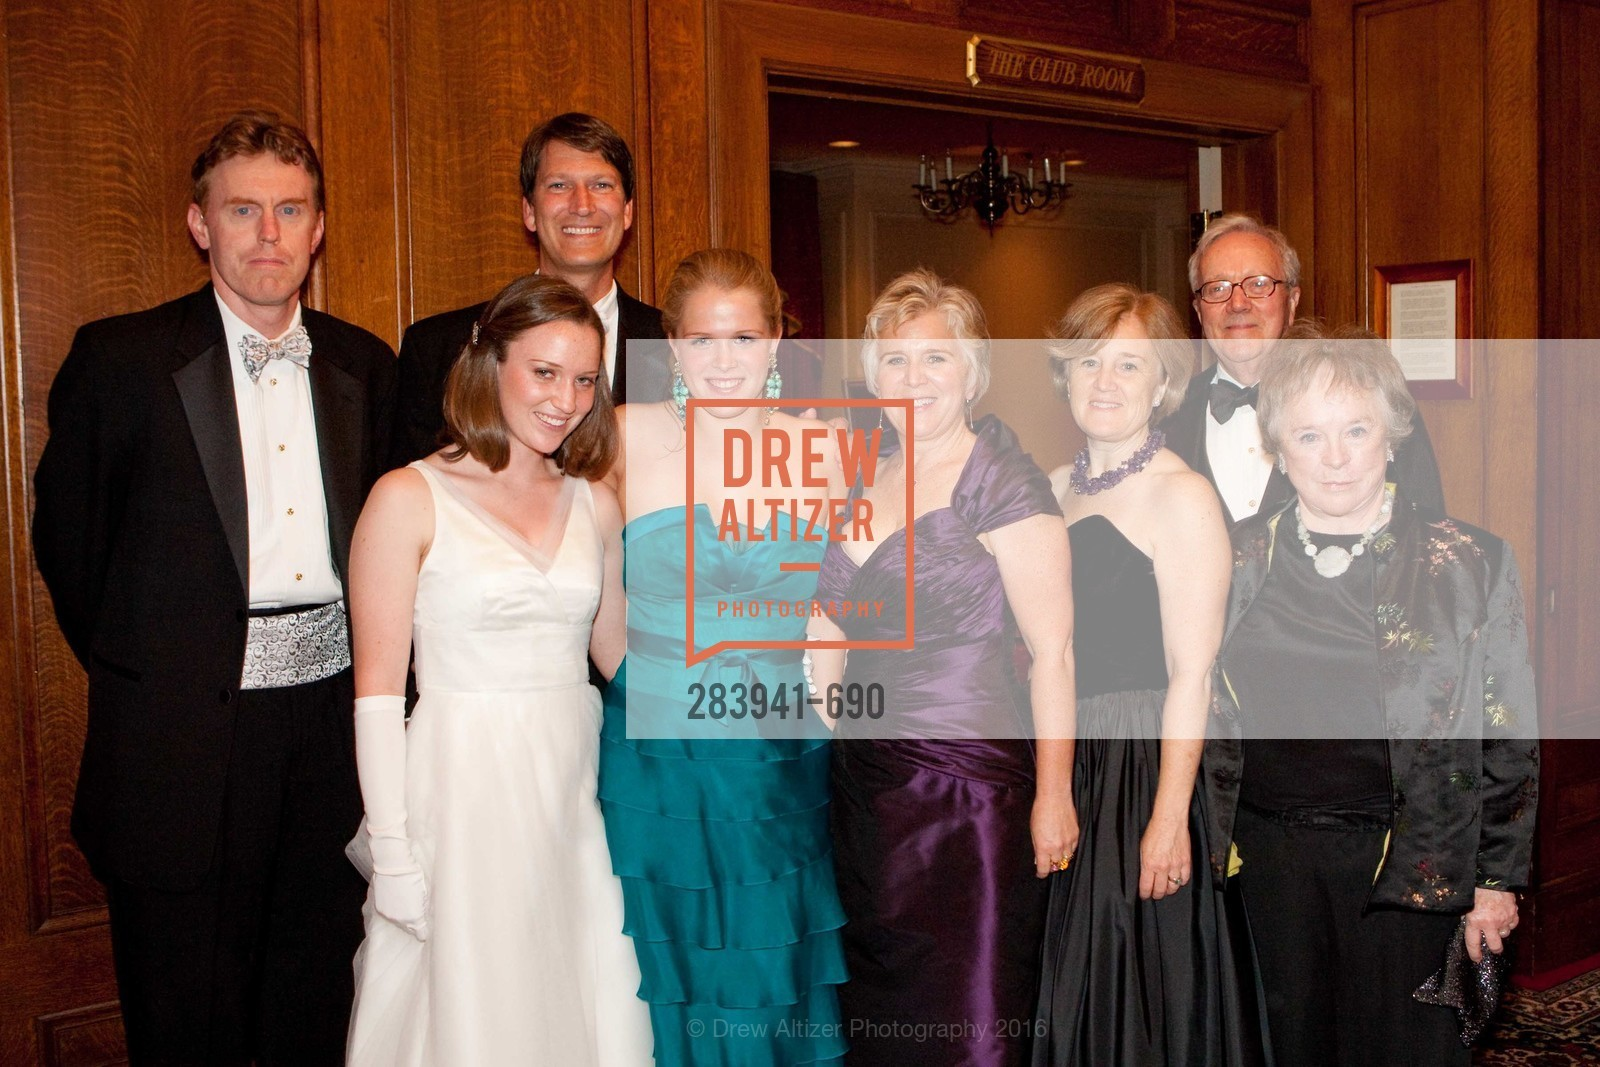 Tom Koegel, Eloise Horn, Peter Horn, Lucy Horn, Zellan LaFollette, Anne LaFollette, Charles LaFollette, Ellen LaFollette, 2009 Debutante Ball, Unknown, July 4th, 2008,Drew Altizer, Drew Altizer Photography, full-service agency, private events, San Francisco photographer, photographer california